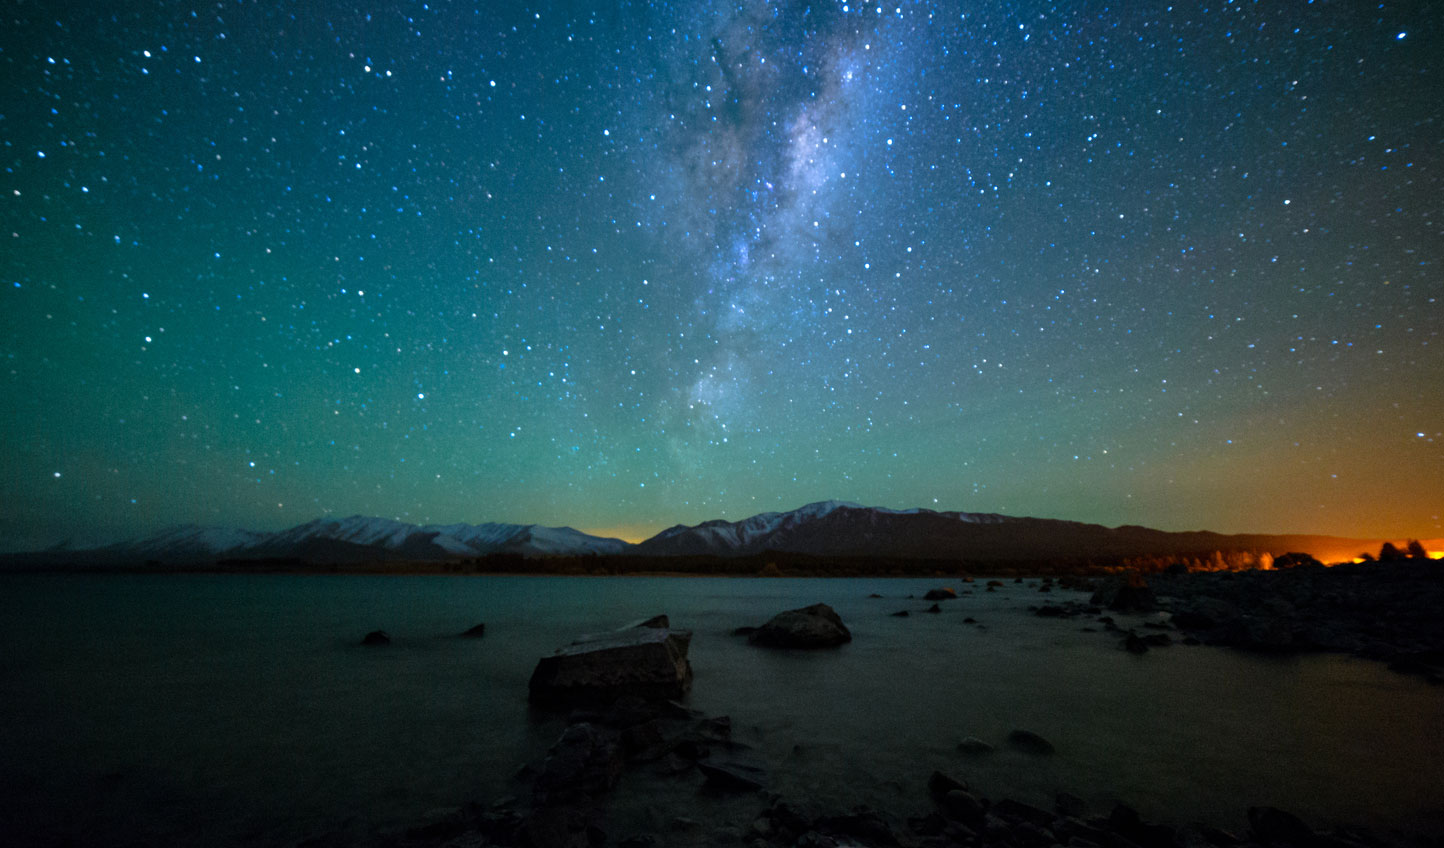 Spend special moments beneath the spectacular stars